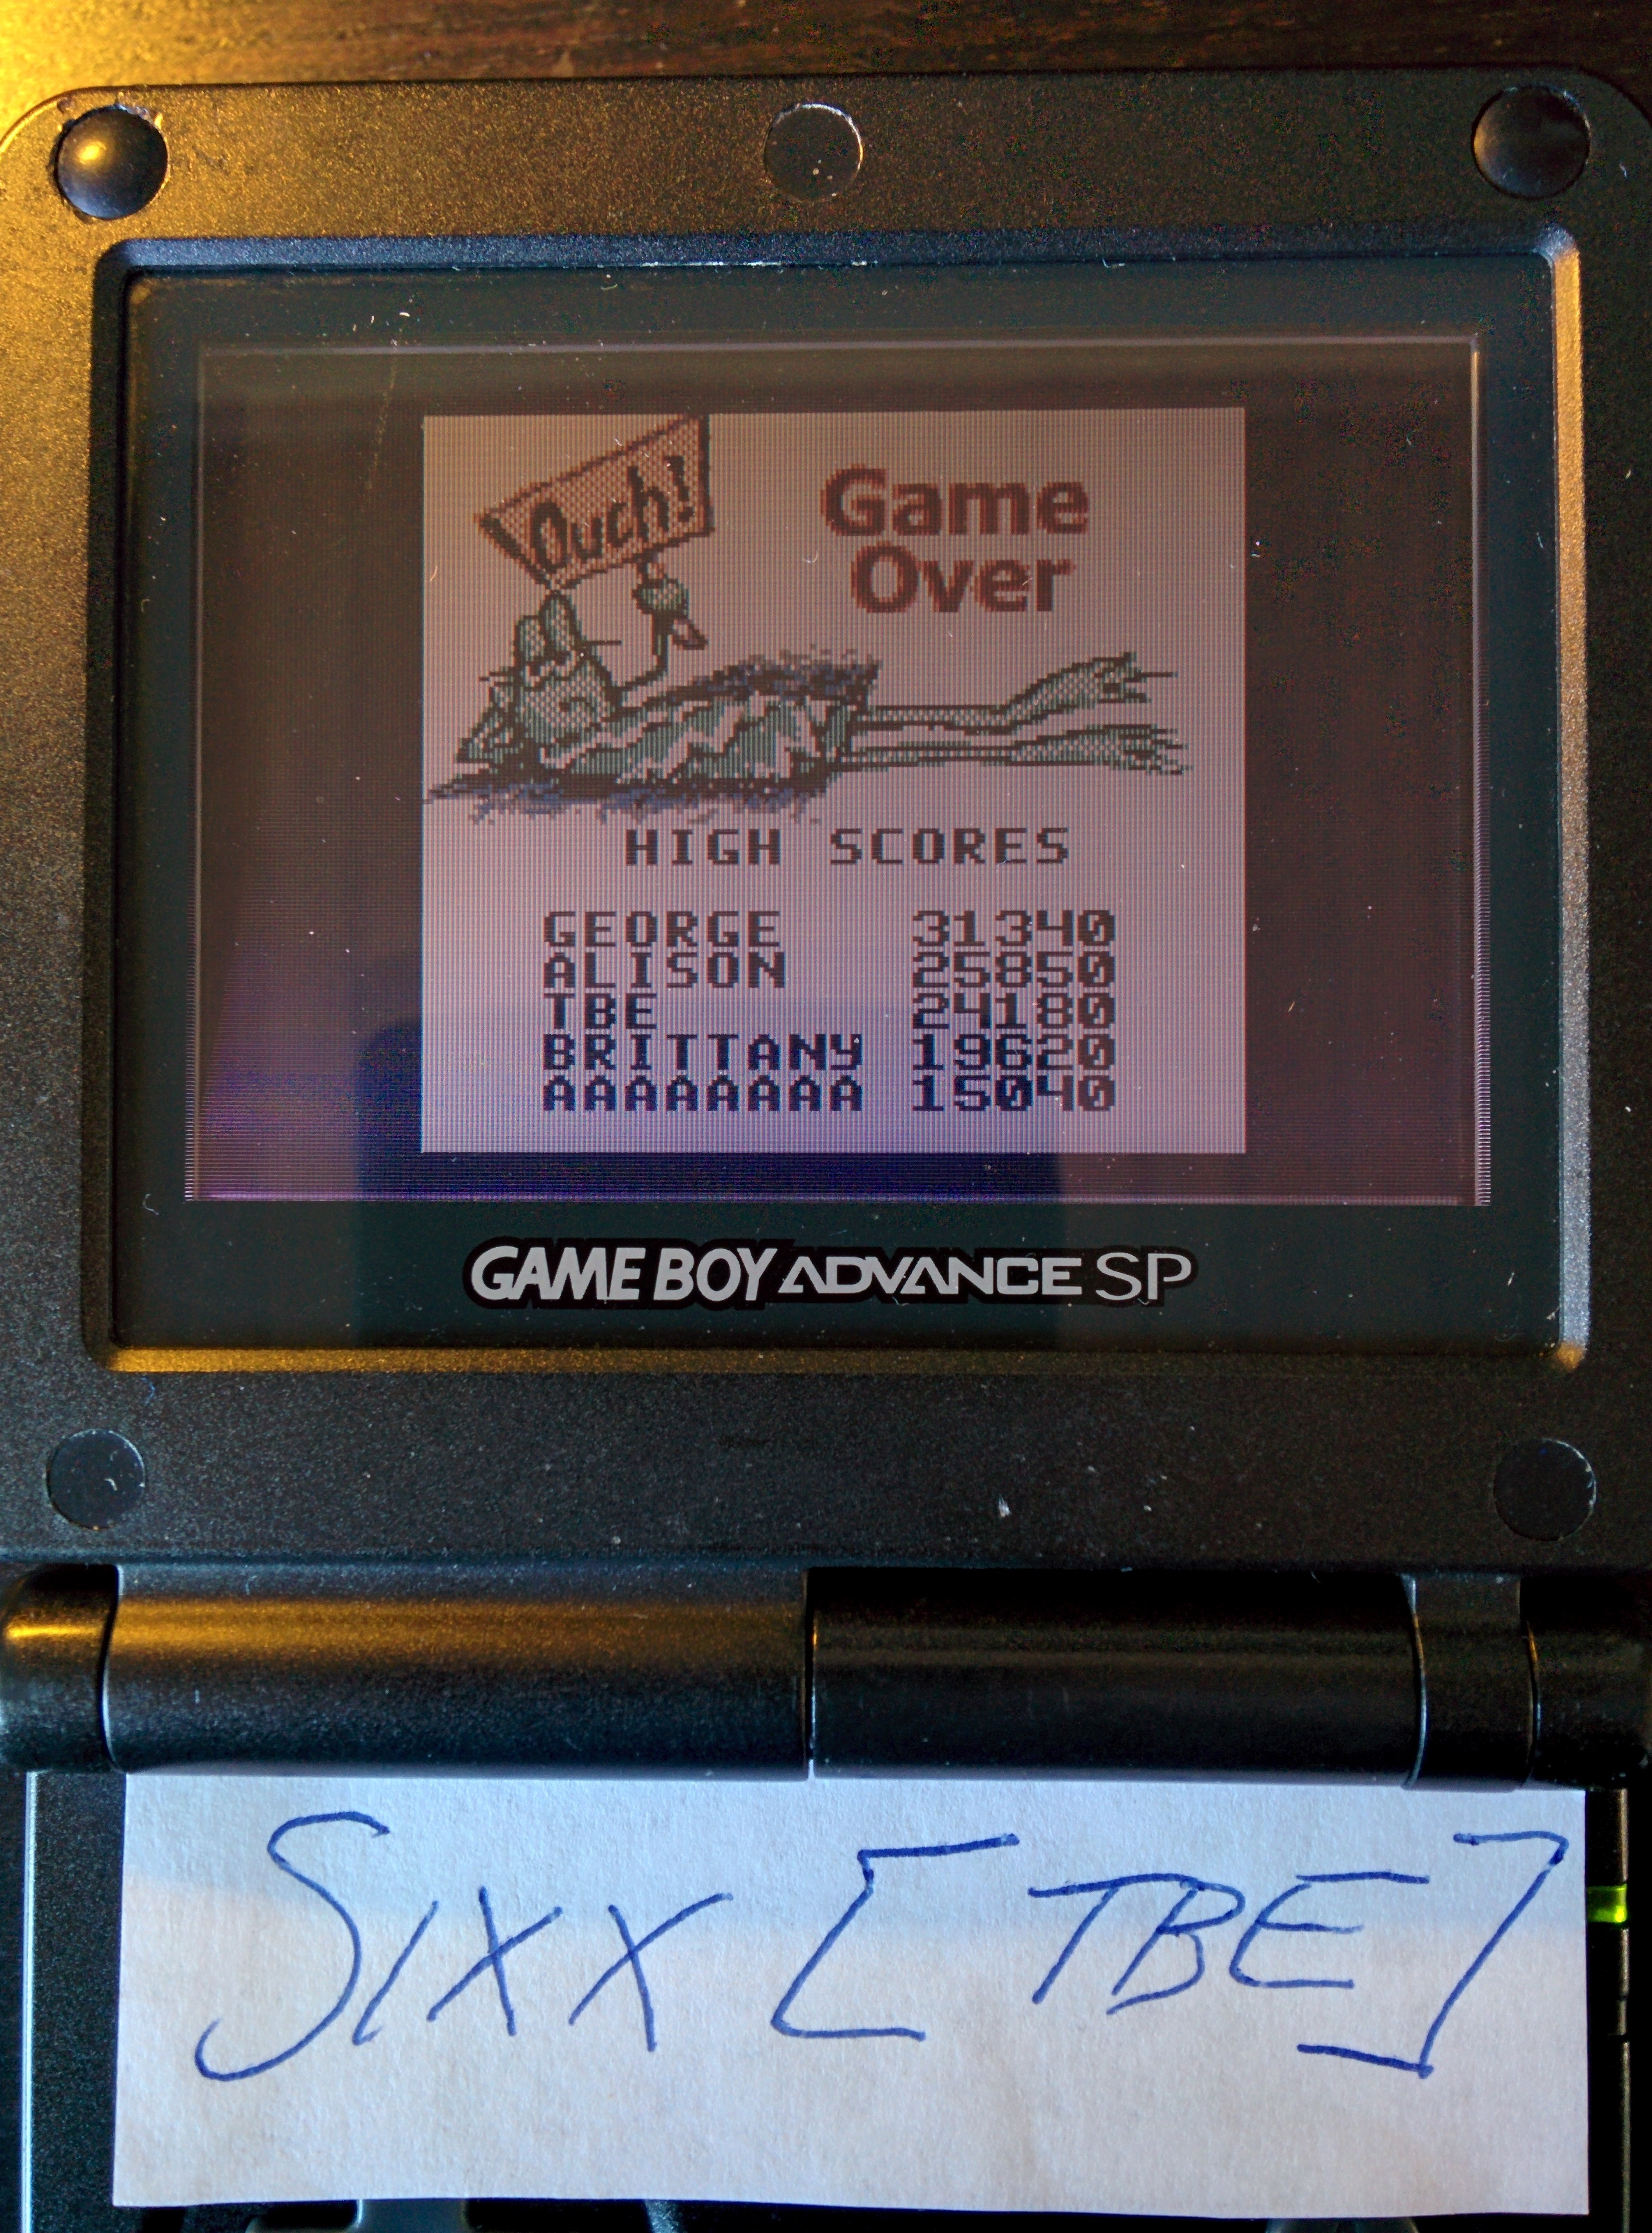 Sixx: Frogger (Game Boy Color) 24,180 points on 2014-08-08 10:46:05